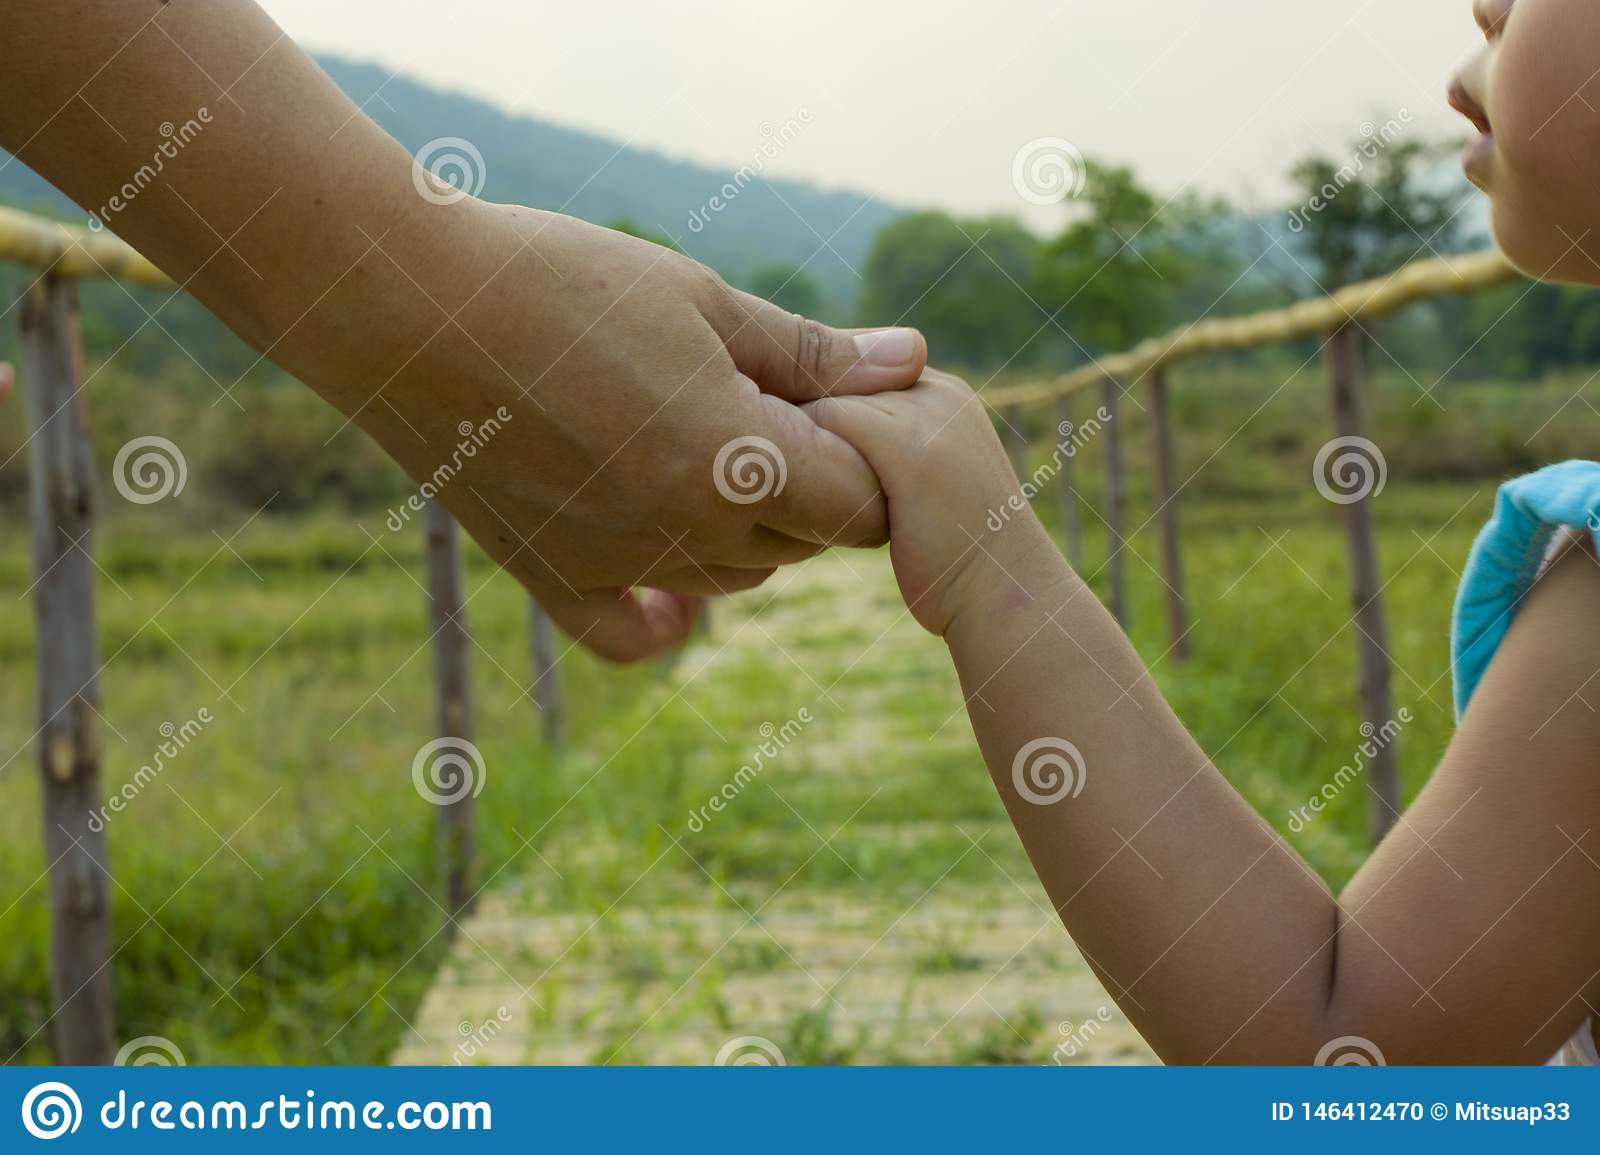 Parent holds the hand of a little child green background, soft focus